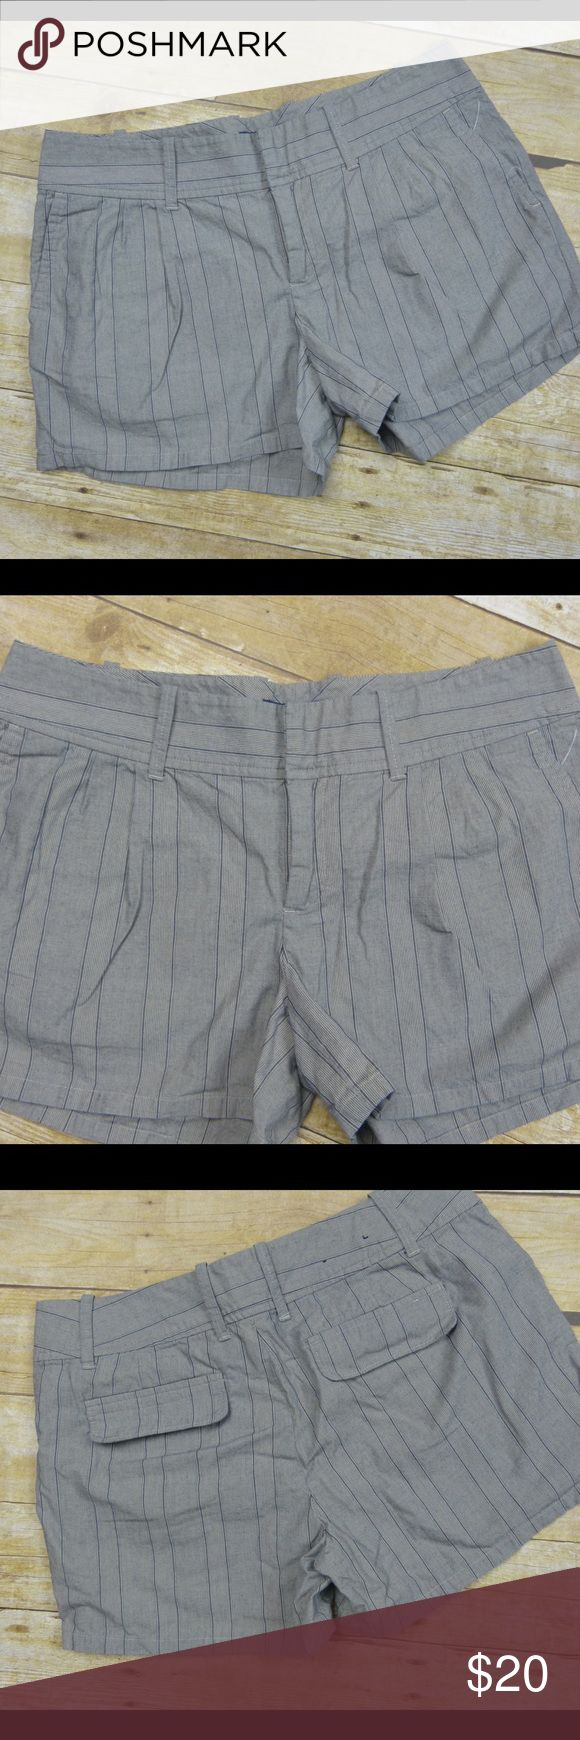 """Vintage Banana Republic Mom Shorts Size 8 Excellent condition Gray/beige 8"""" rise  3.5"""" inseam 16.5"""" side to side at the waist 100% cotton Banana Republic Shorts"""